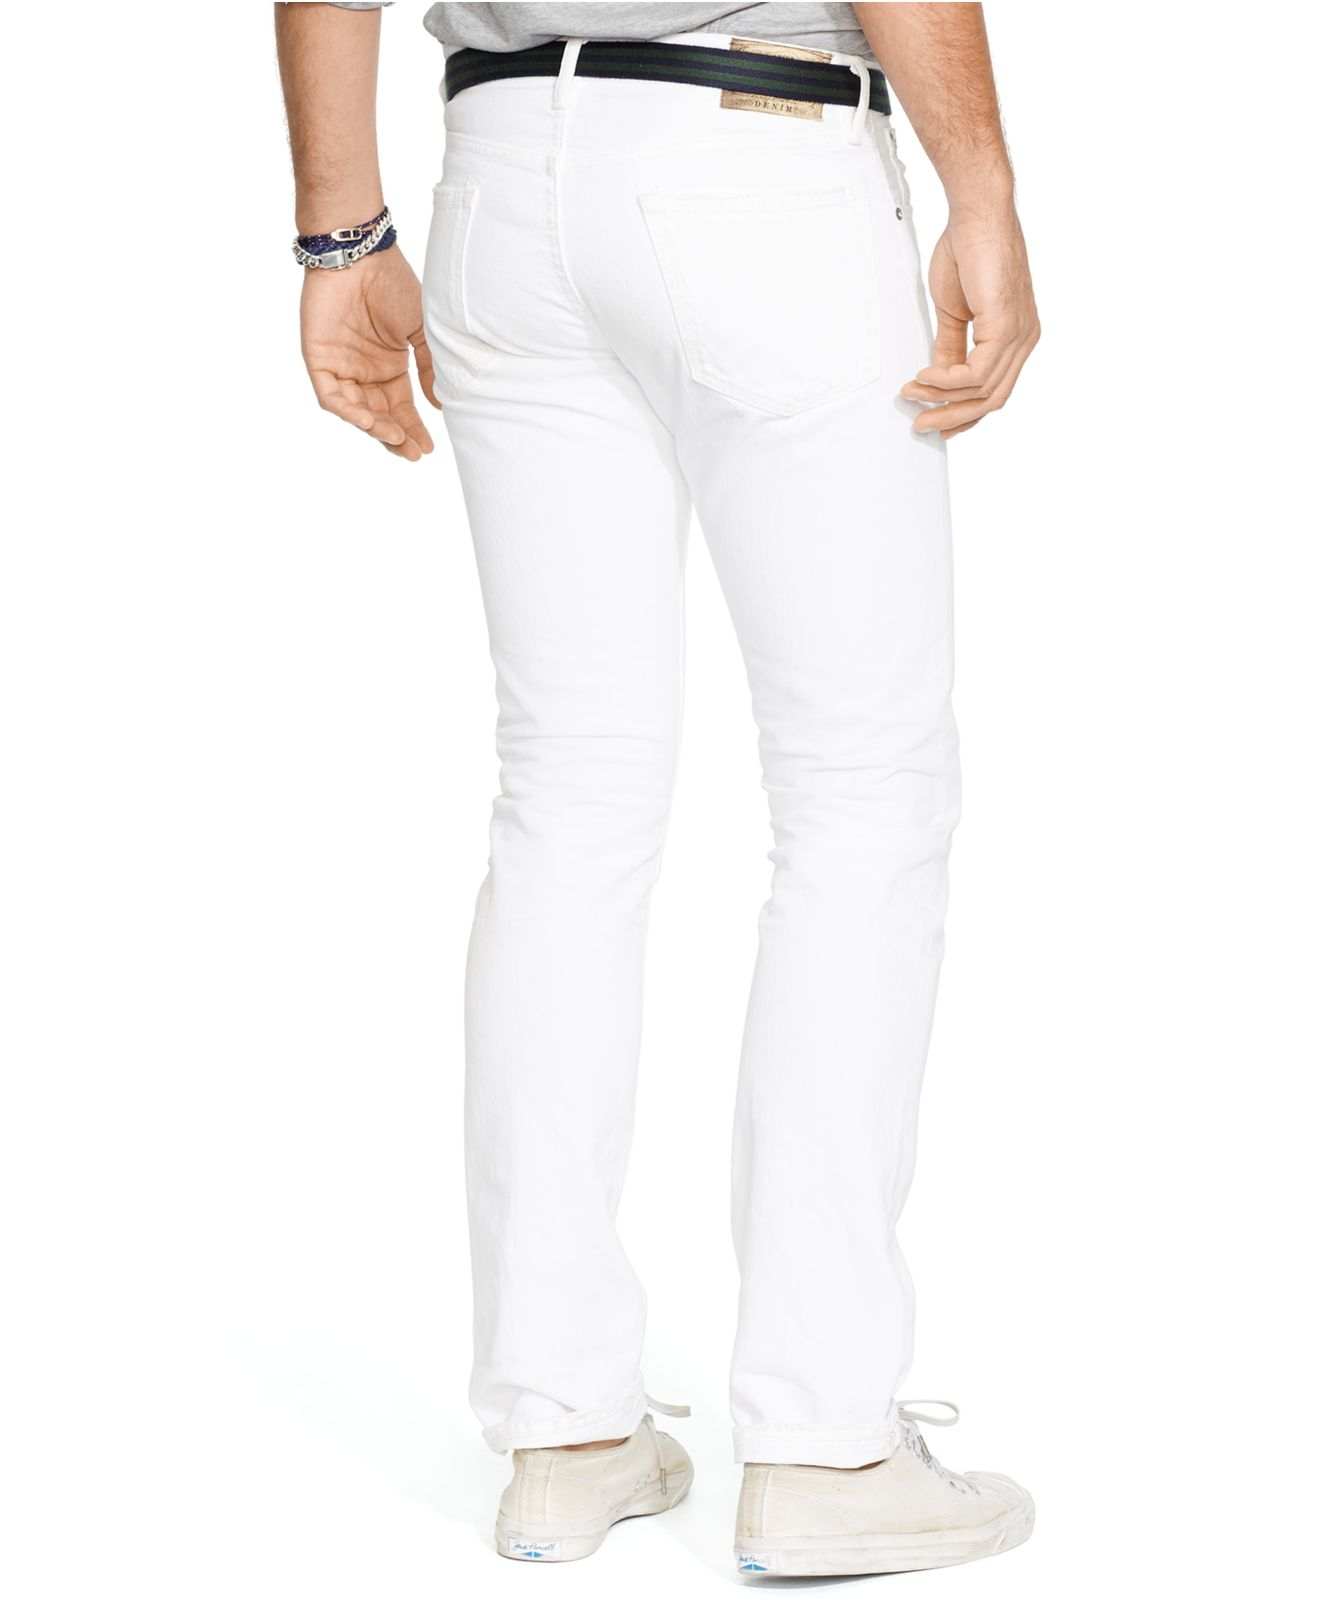 Jeans For Tall Men 36 Inseam